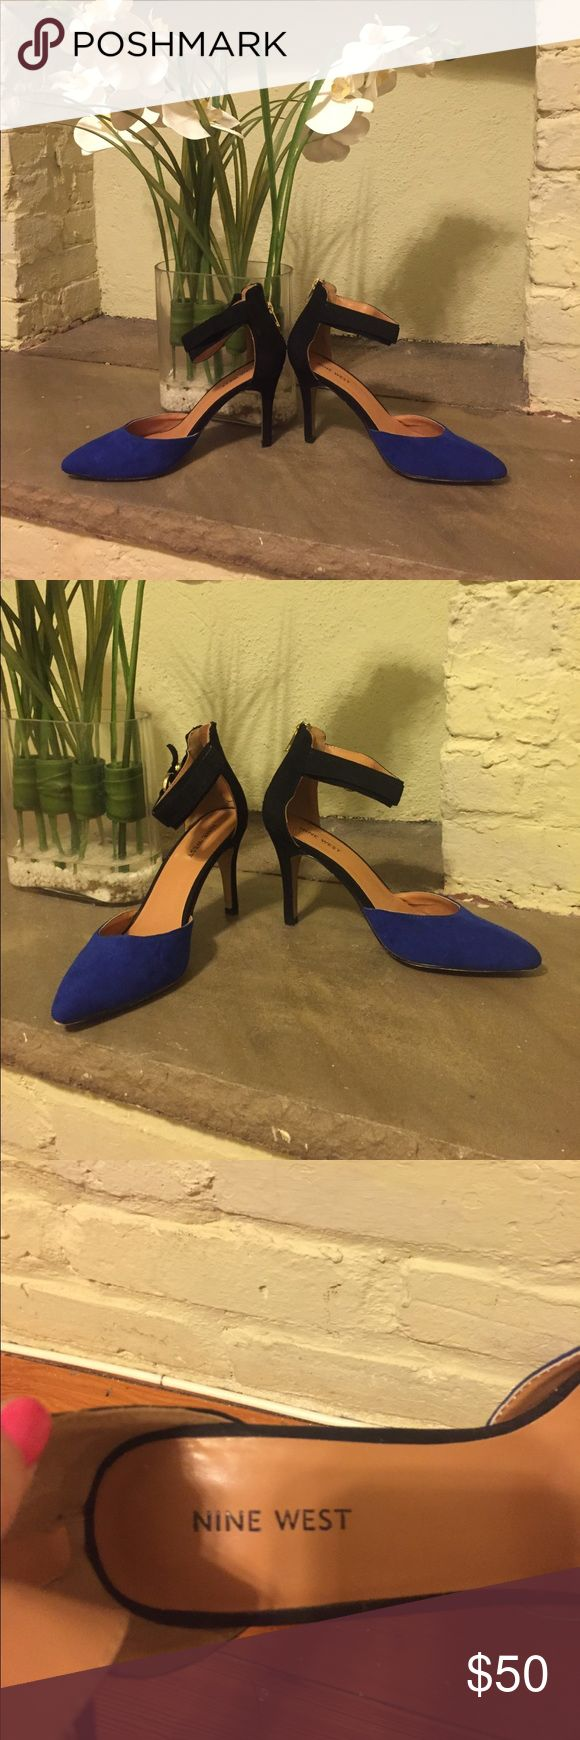 High heel shoes Nine West high heel shoes with ankle strap! Nine West Shoes Heels